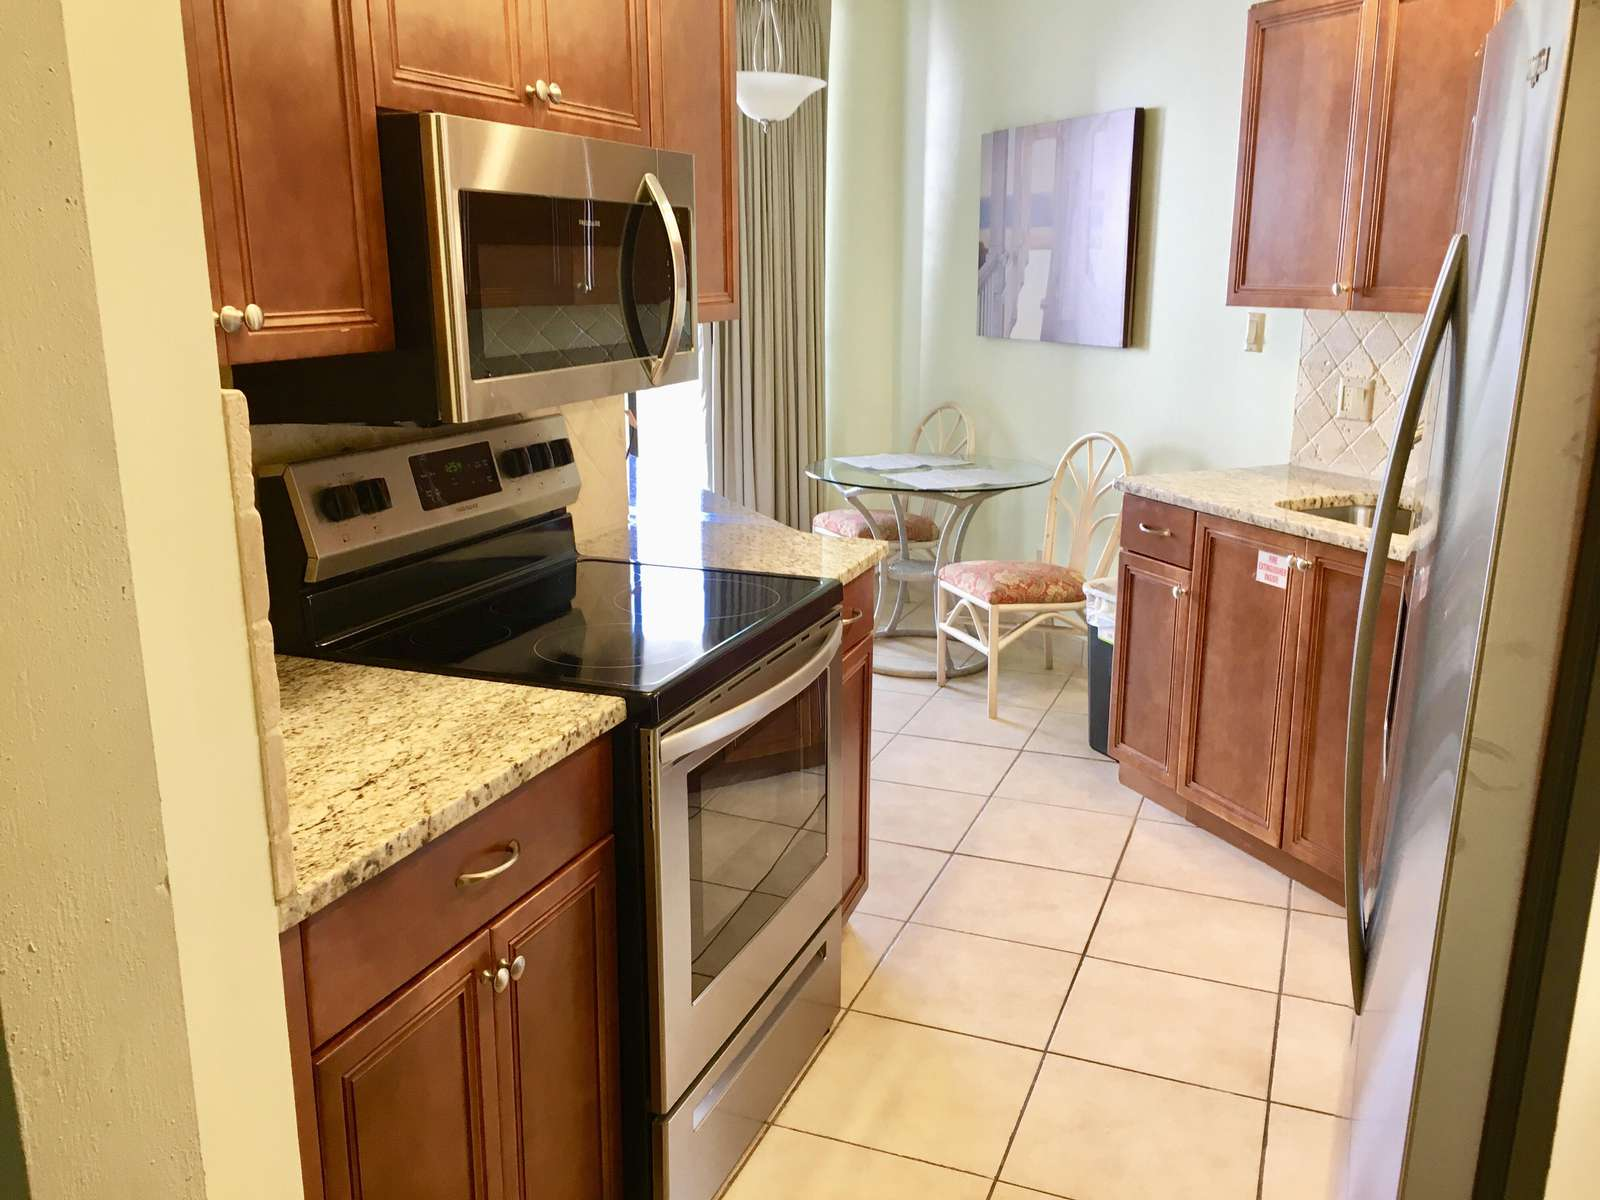 The recently renovated kitchen has new granite counter-tops and all new stainless steel appliances.